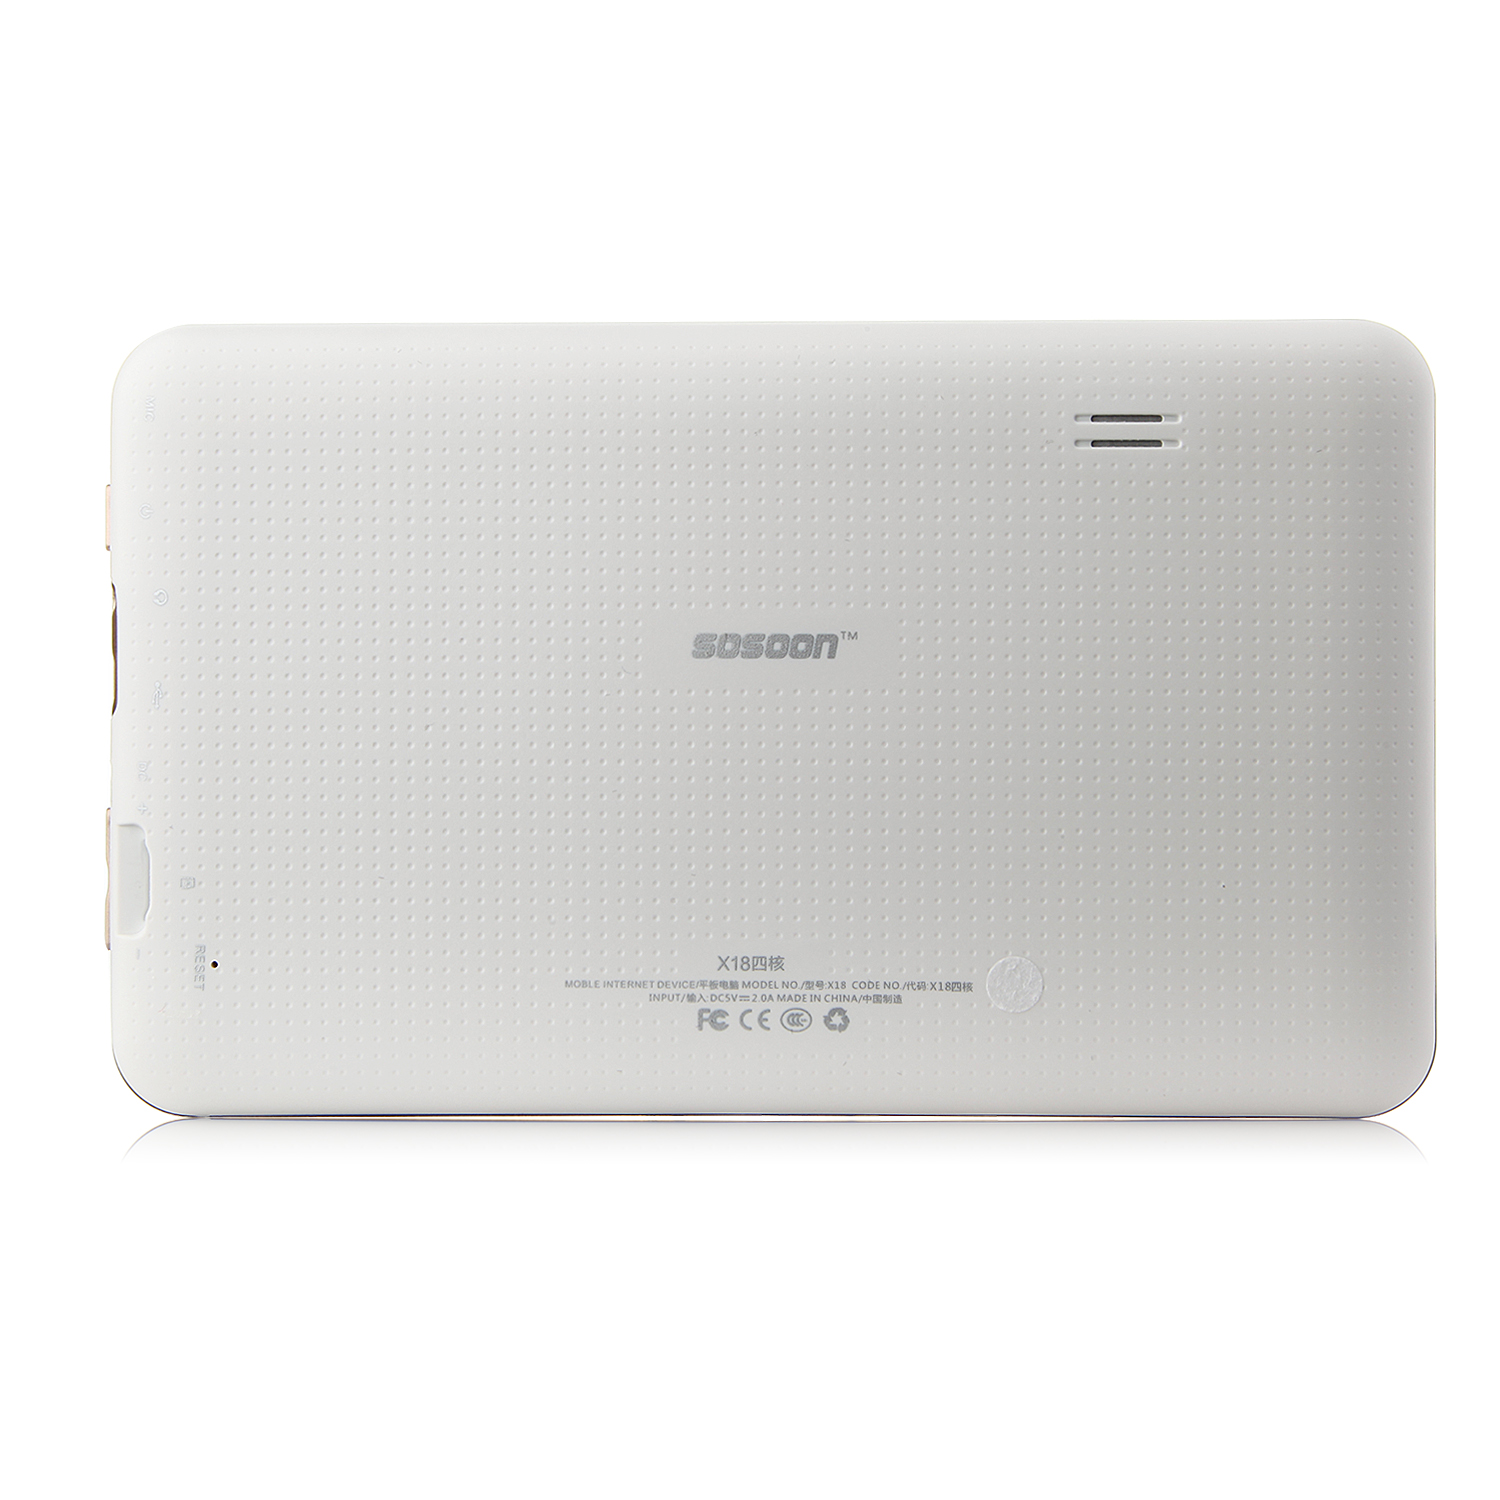 SOSOON X18 Tablet PC AllWinner A33 Quad Core 7.0 Inch Android 4.4 8GB White